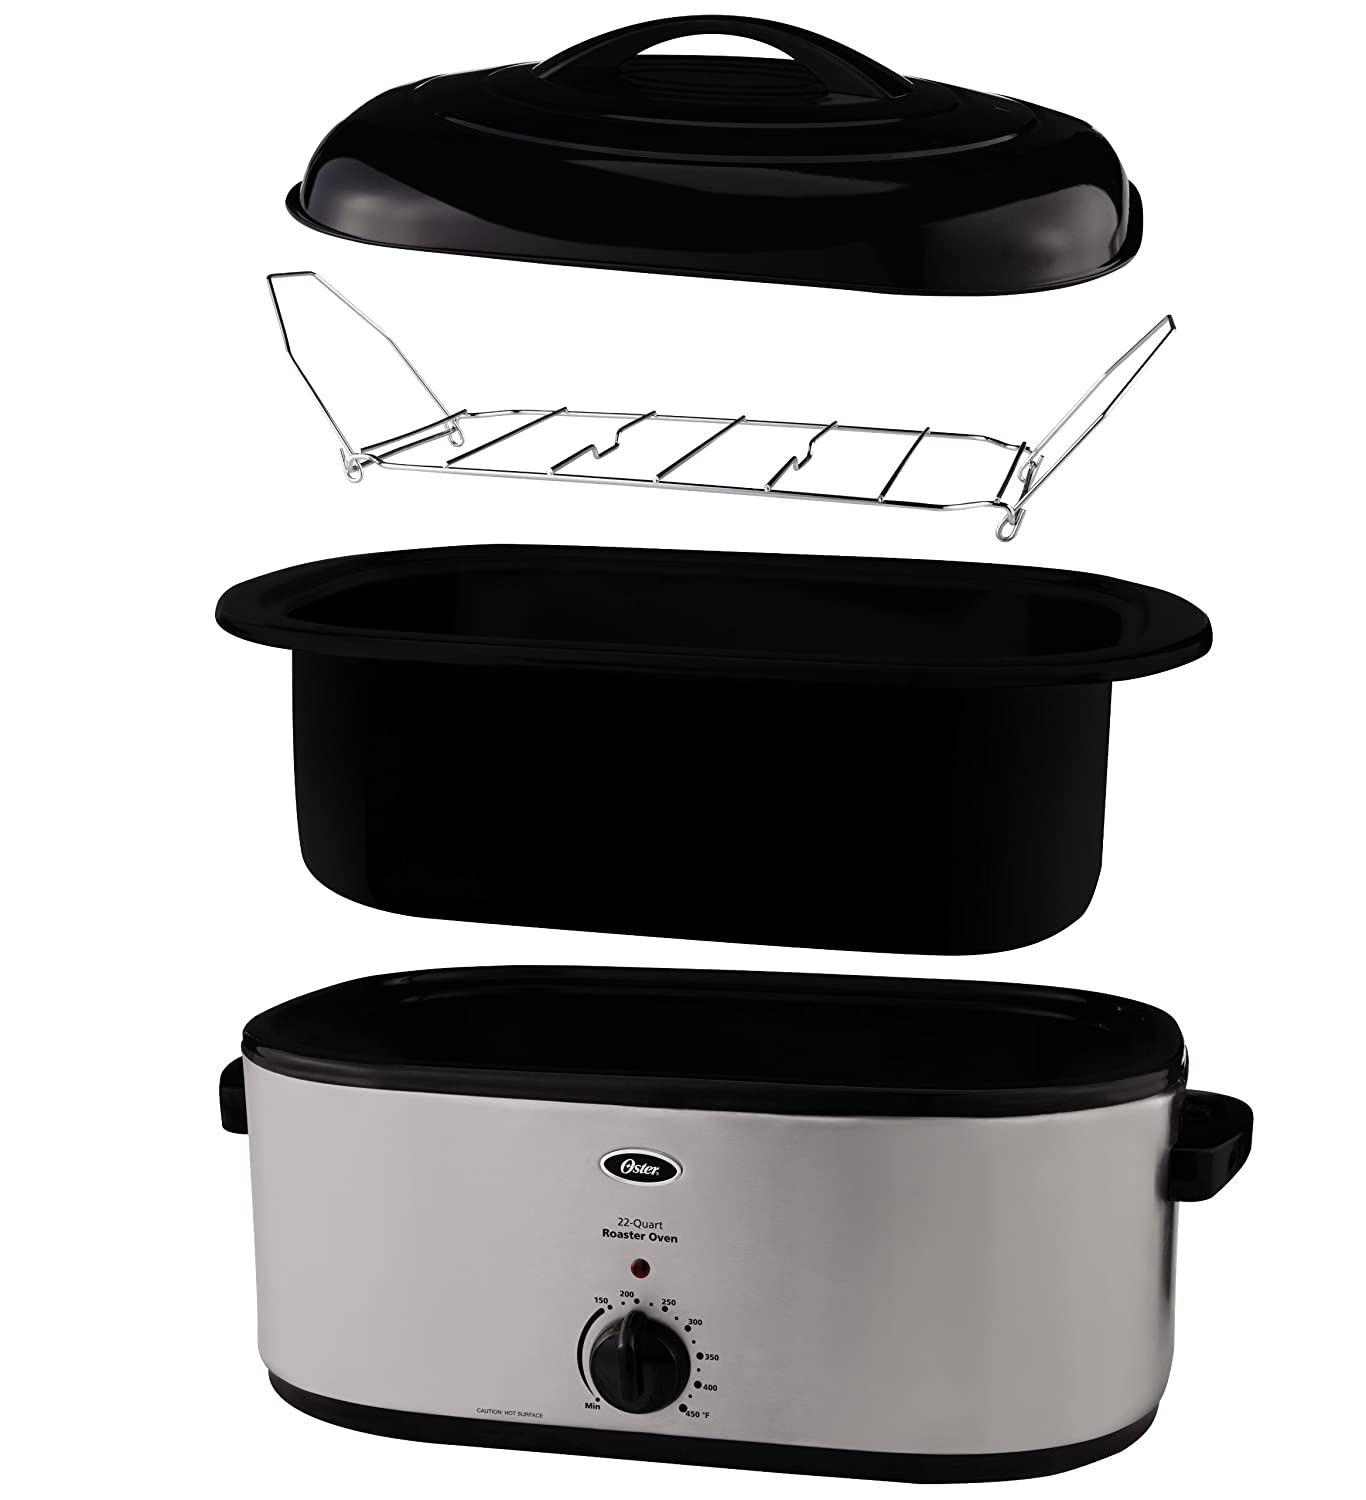 Superior Amazon.com: Oster CKSTRS23 22 Quart Roaster Oven, Stainless Steel: Electric  Roasters: Kitchen U0026 Dining